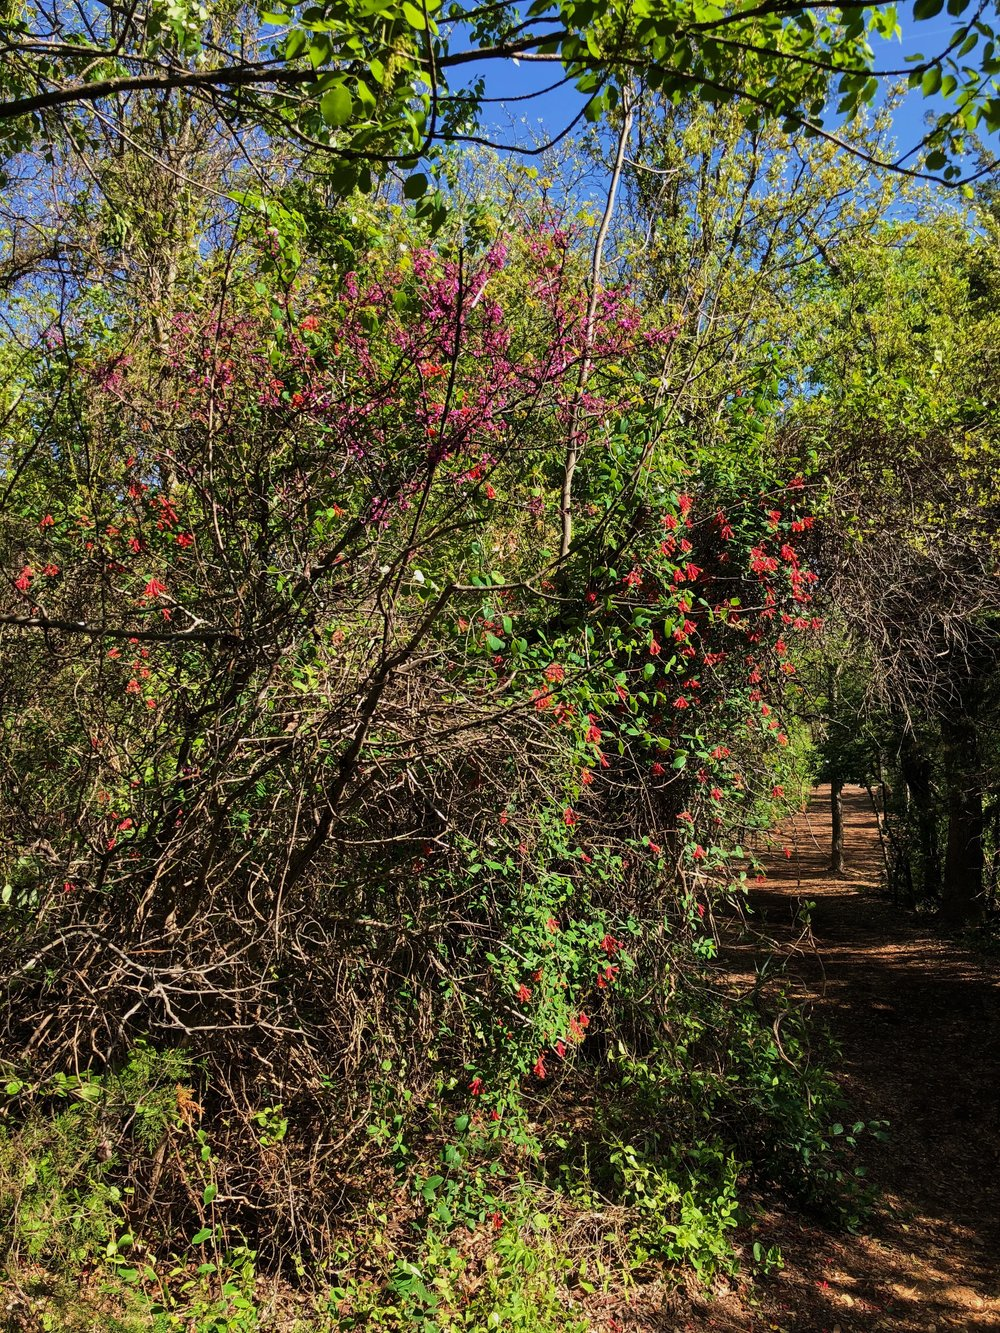 Cercis canadensis, Eastern redbud and Lonicera sempervirens, Coral honeysuckle